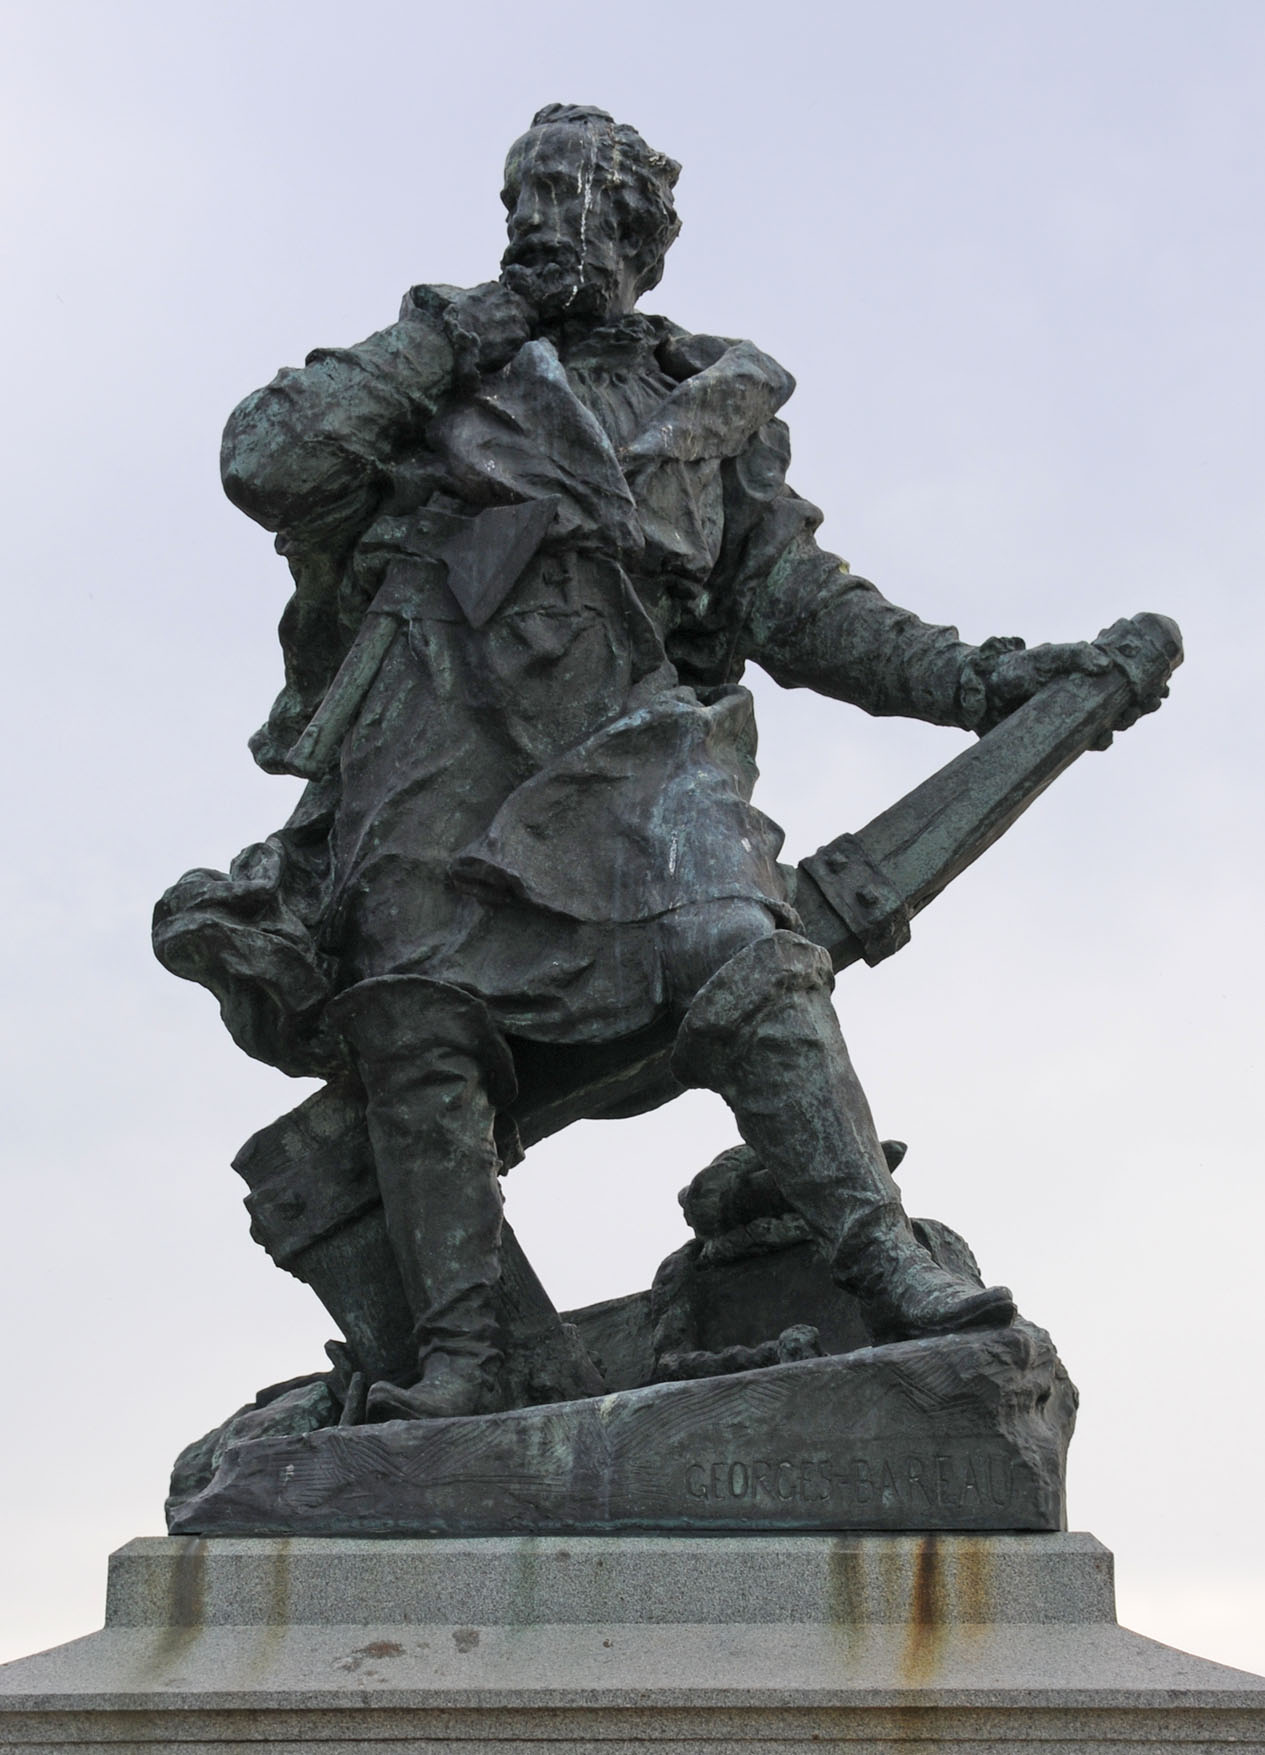 Jacques Cartier Monument in St Malo, France. Photo taken on August 28, 2008.